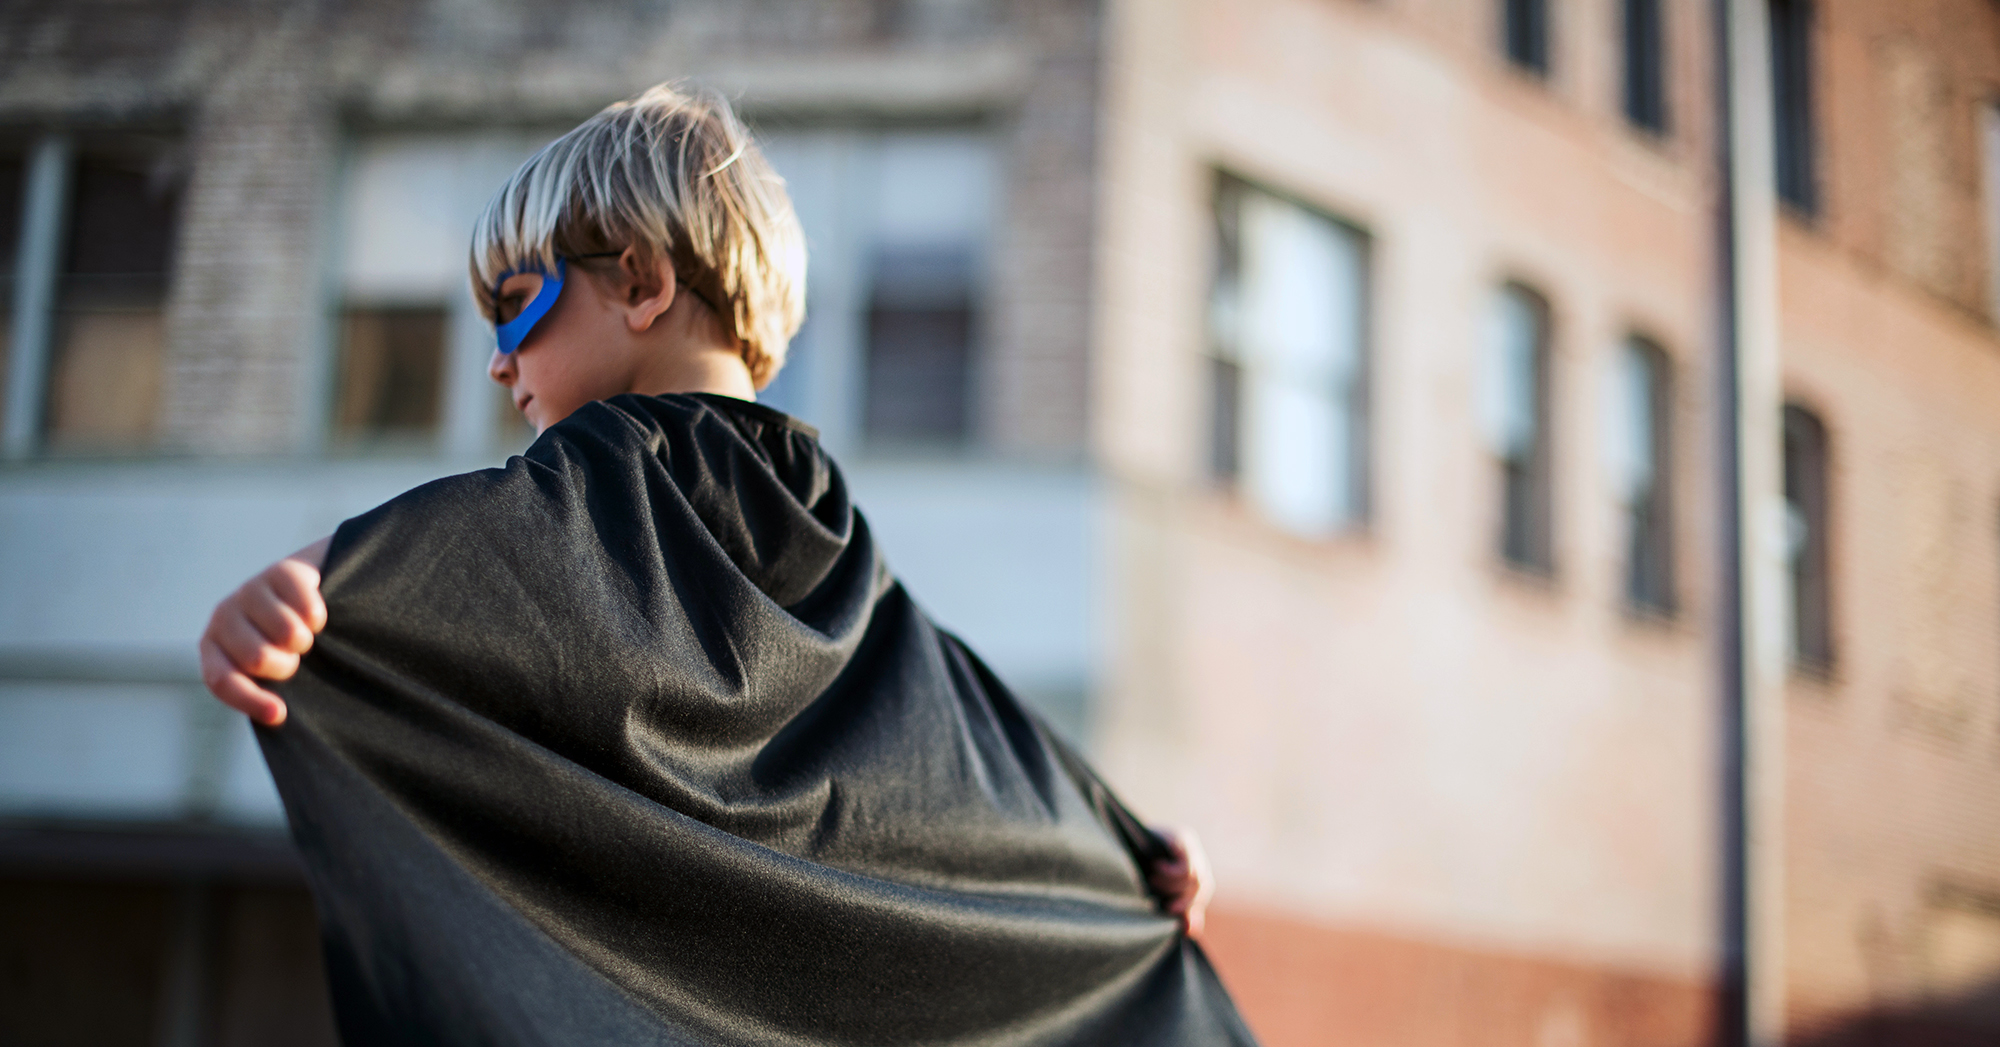 Fake it until you make it: creating an alter ego